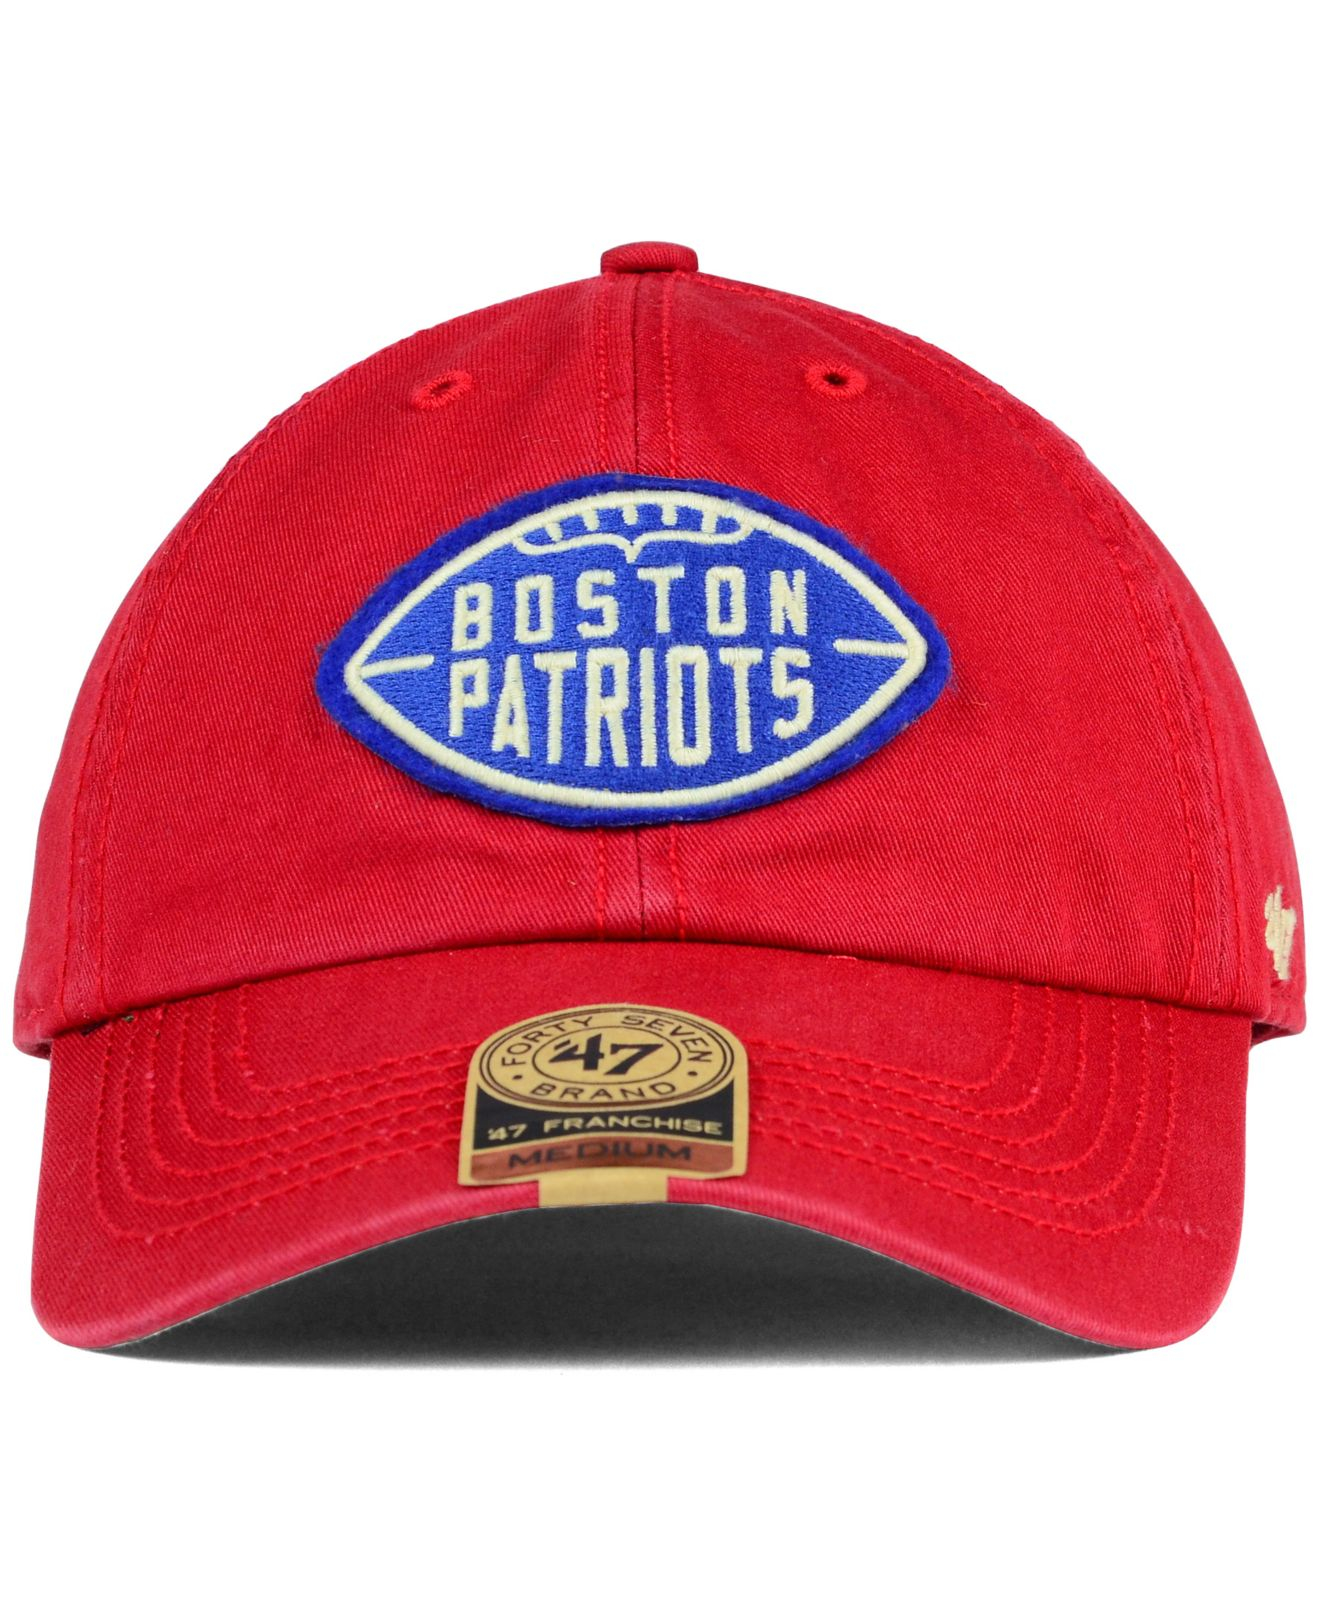 Lyst - 47 Brand New England Patriots Papa Franchise Cap in Red for Men 1a0a805c143